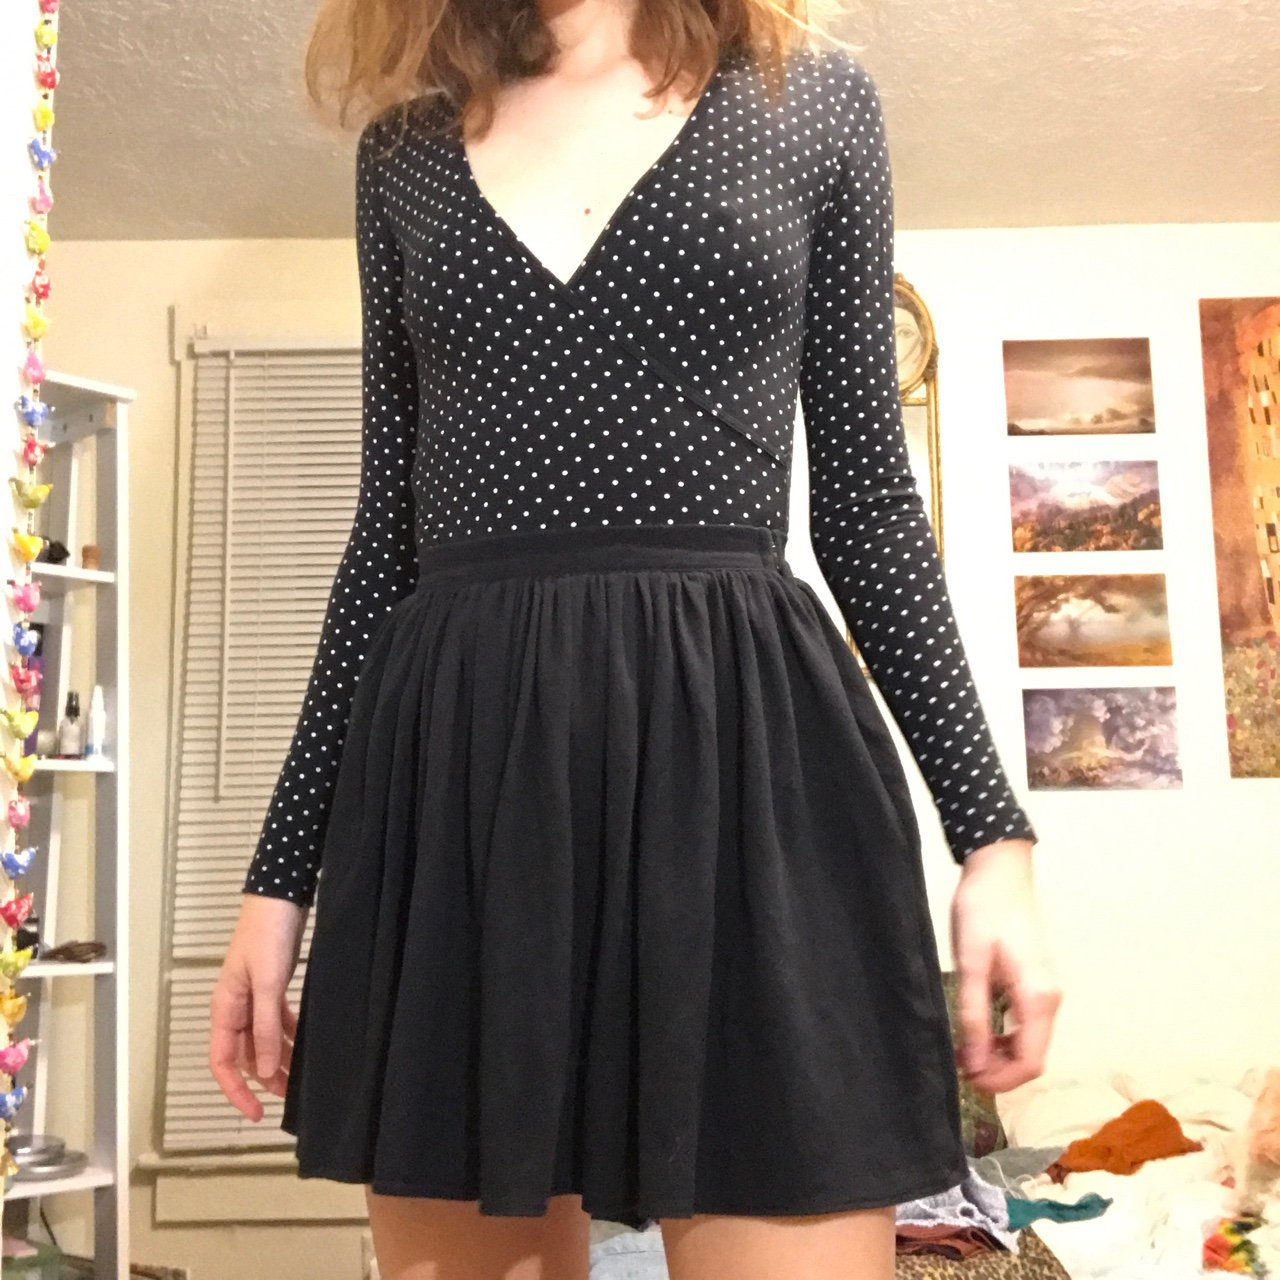 Cute Skater Skirts Outfits Lixnet Ag